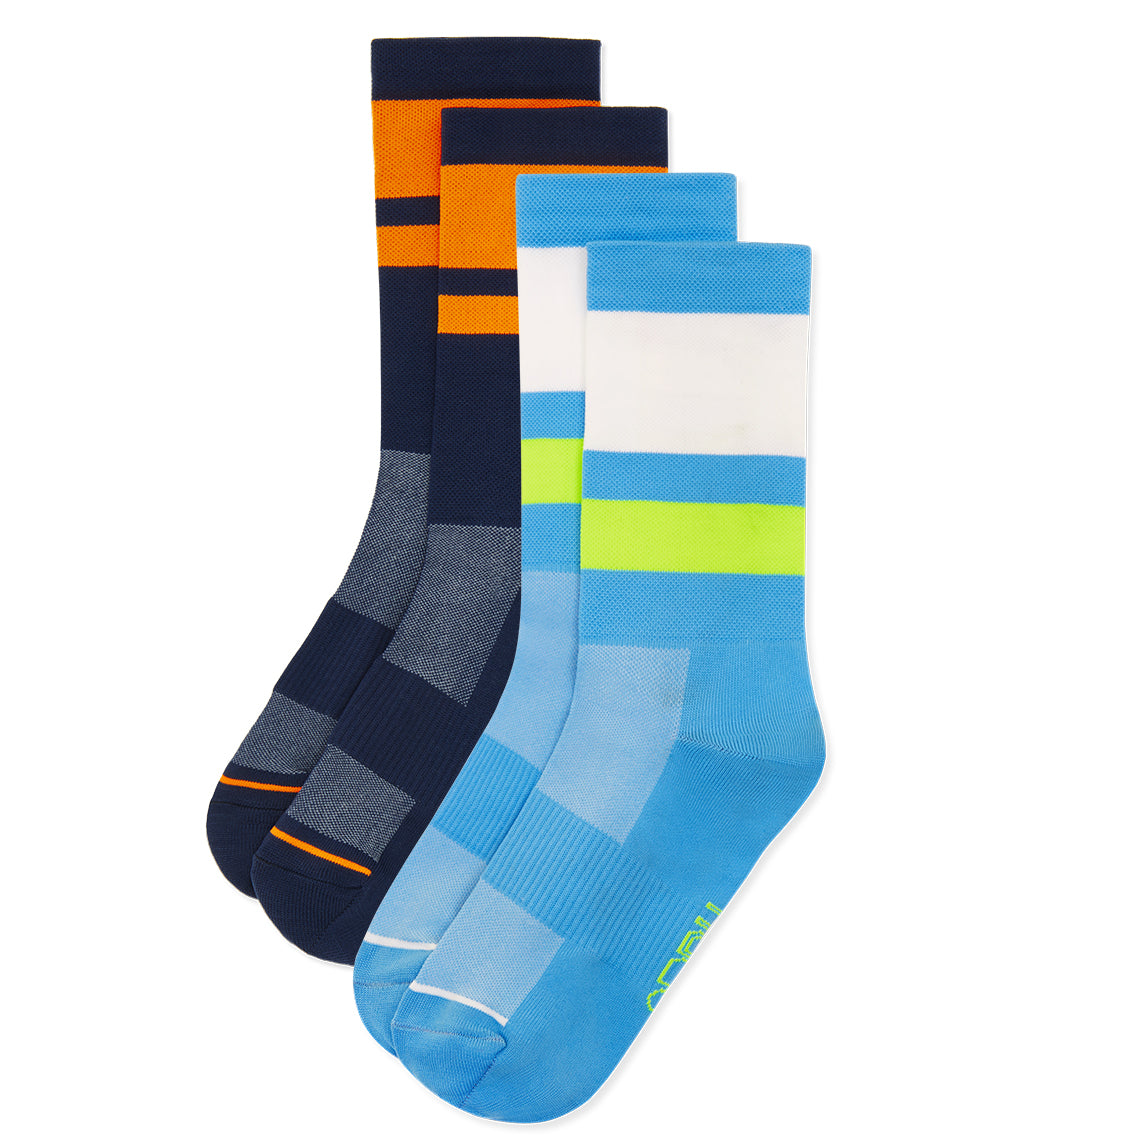 Cycling sock bundle deals